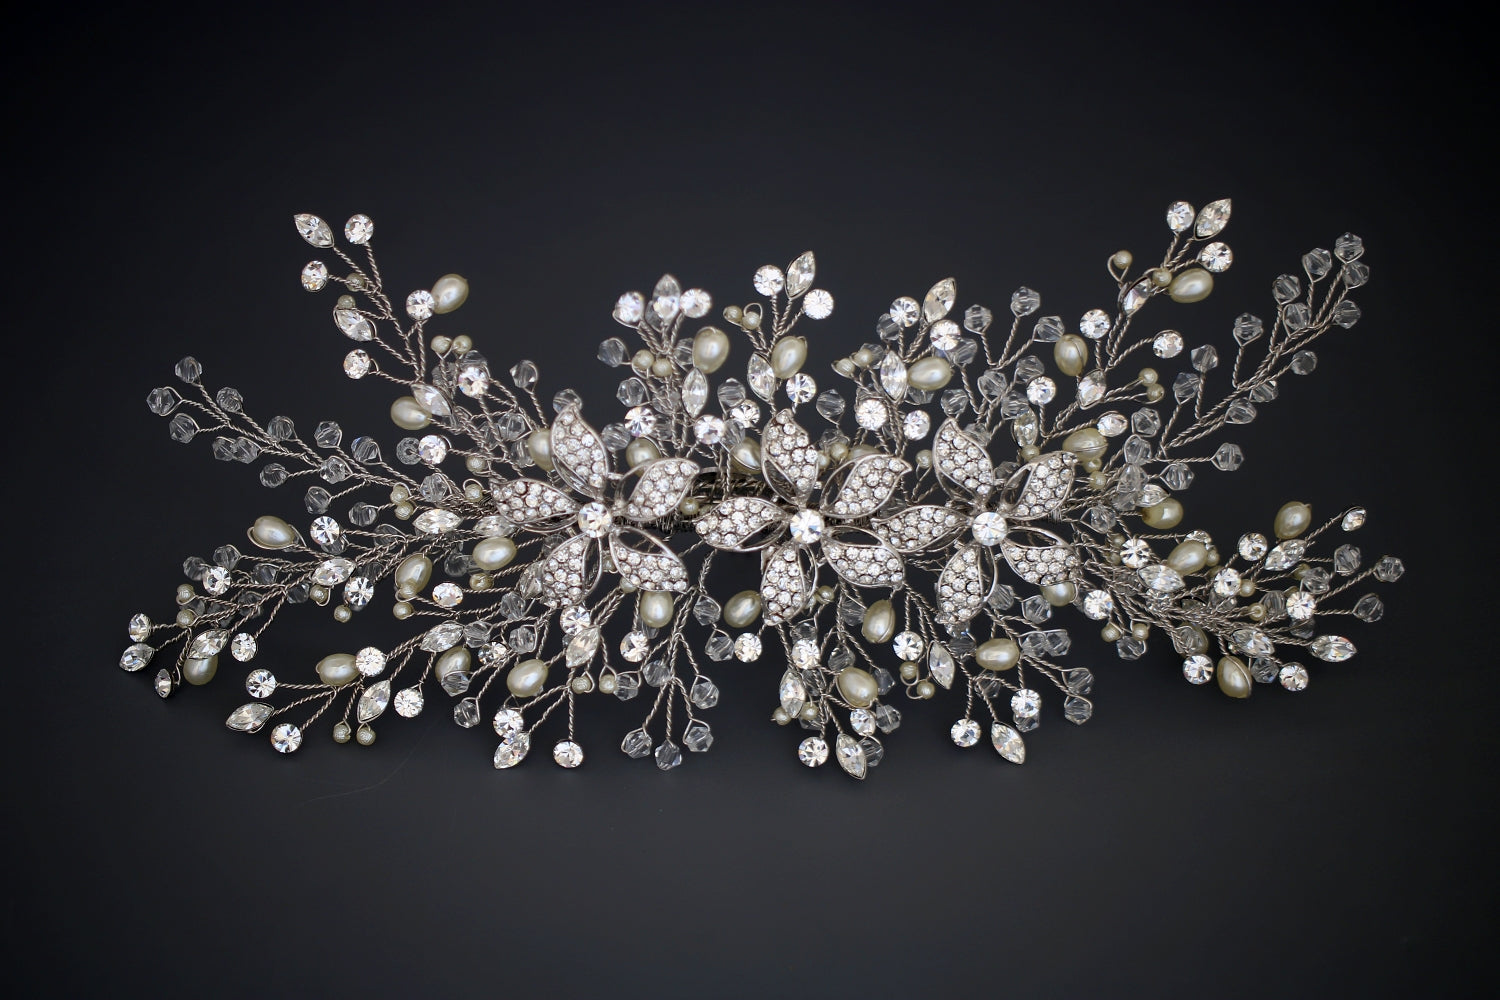 TIFFANY Bridal Headpiece Swarovski, Pearls & Crystals